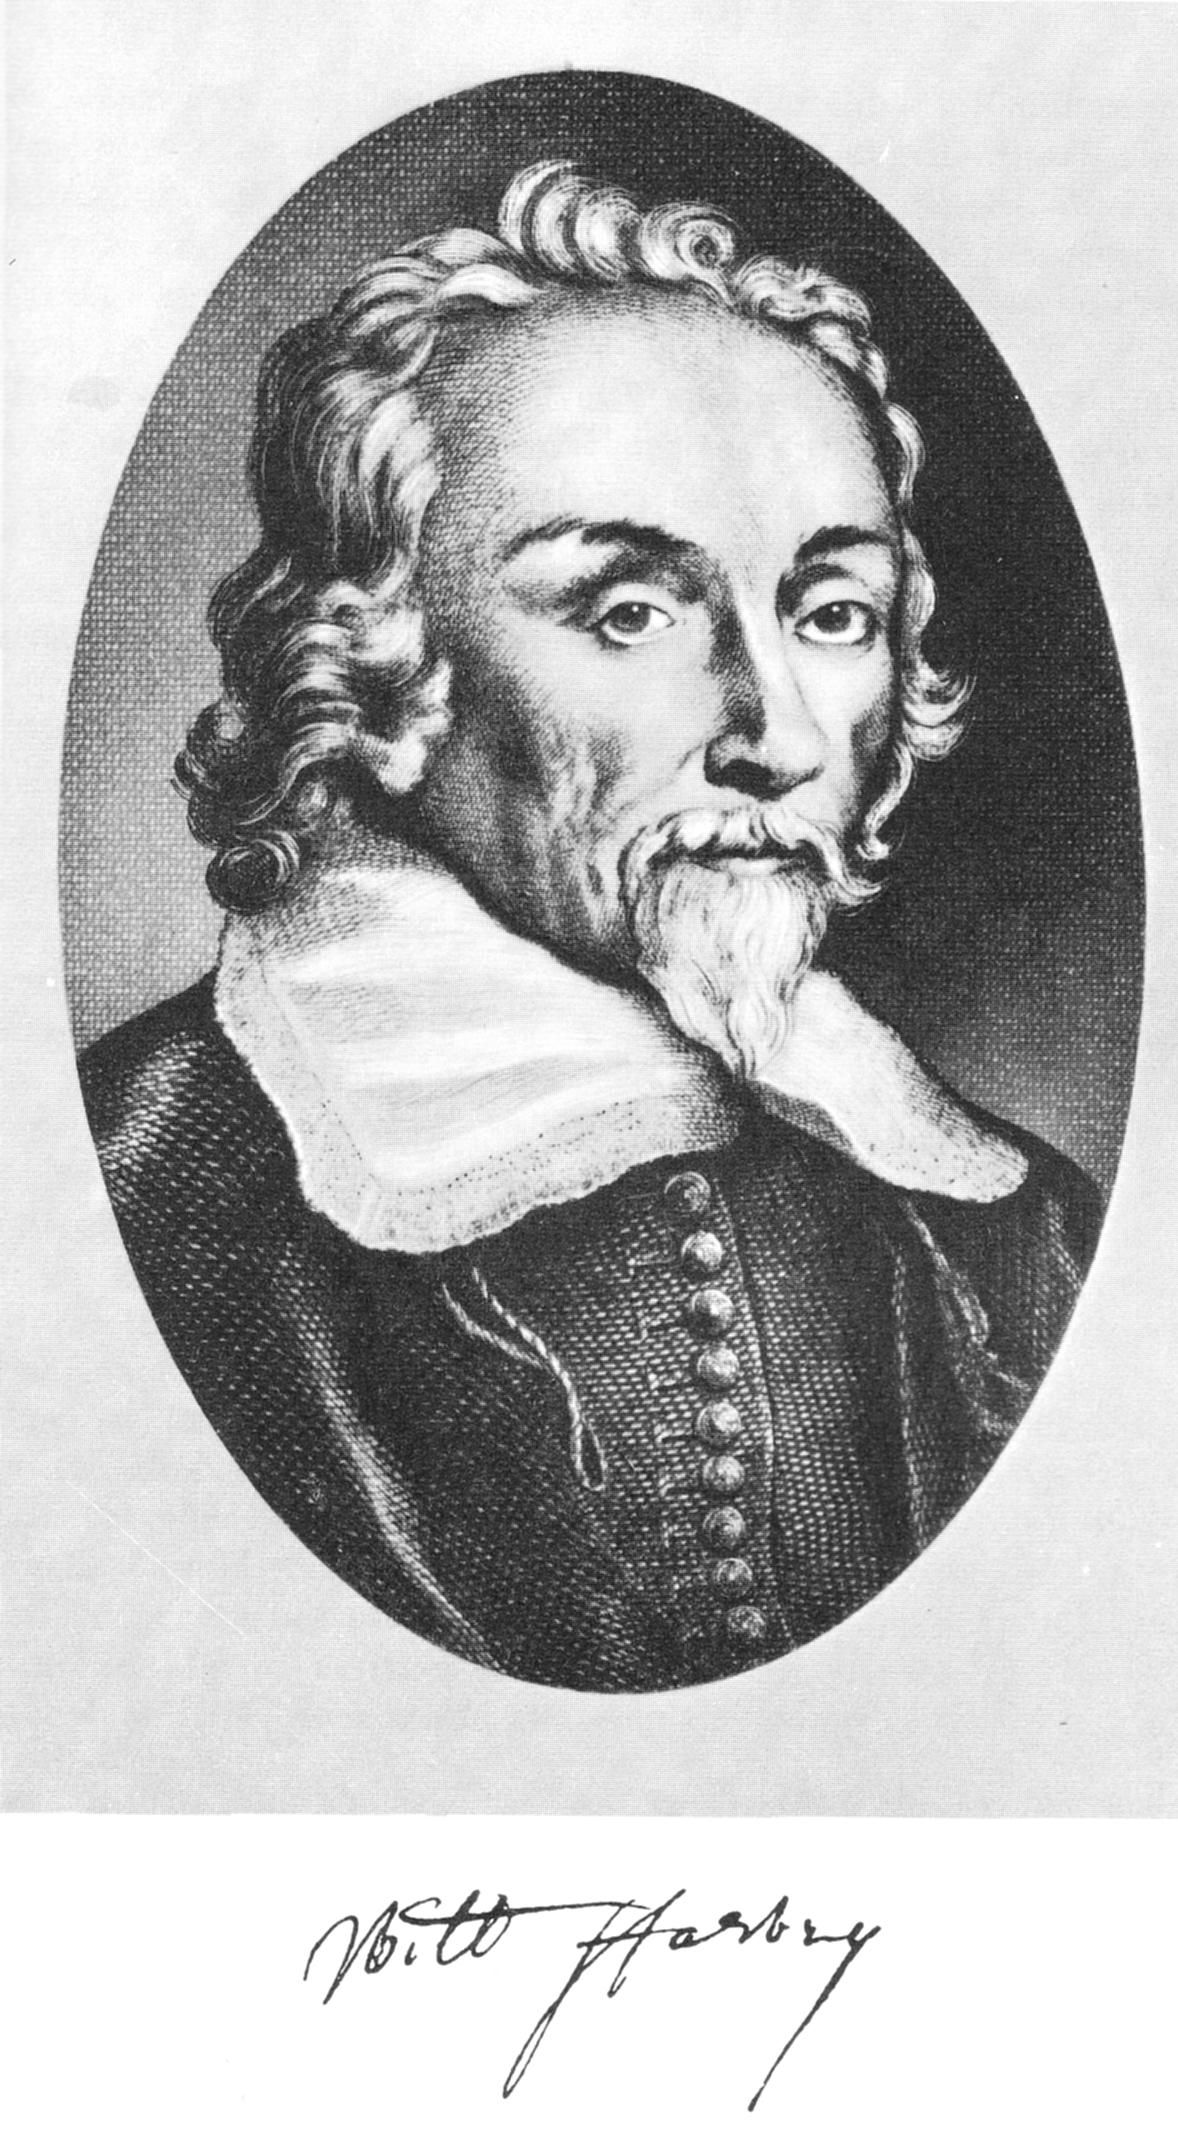 William Harvey, a physician, understood human anatomy and changed ...